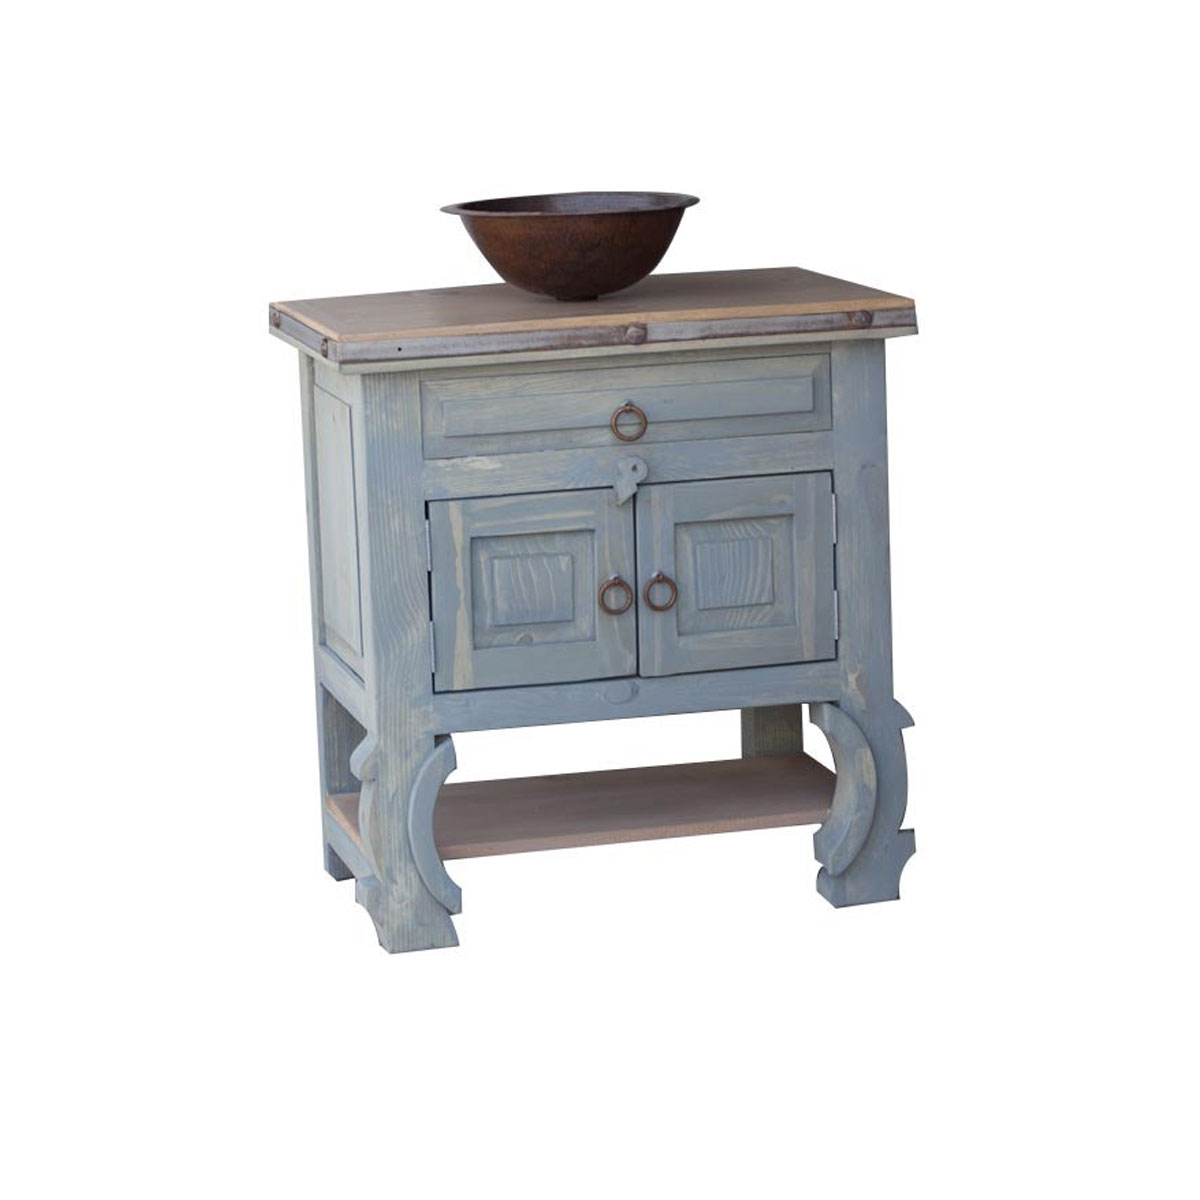 Unique And Ornate Small Bathroom Vanity For Sale